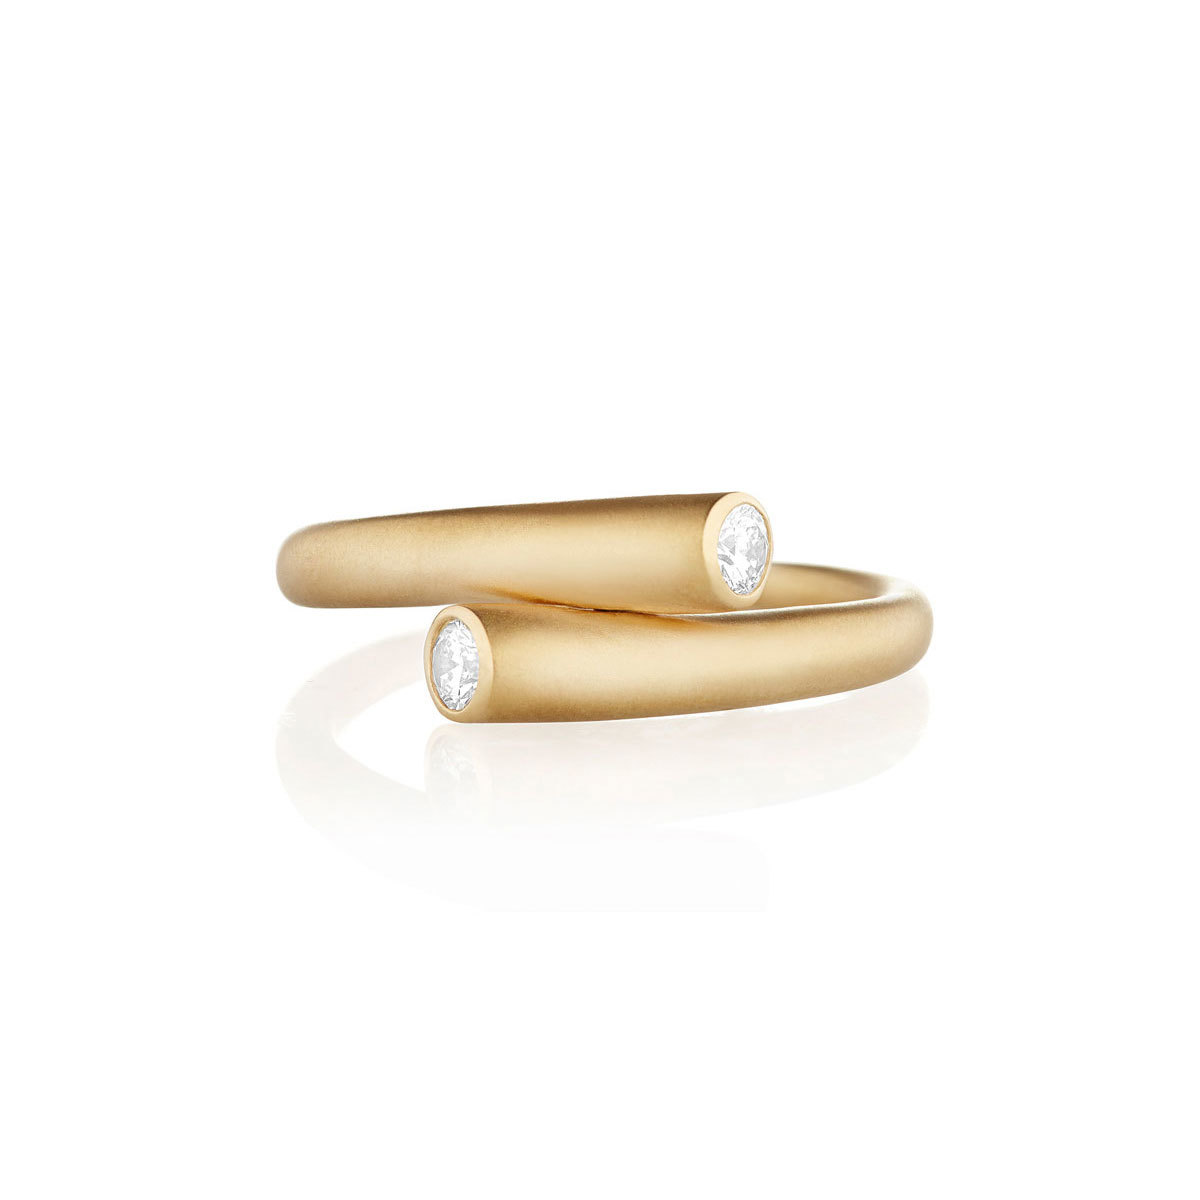 Carelle Whirl 18k Gold 2-Diamond Ring from Neiman Marcus photo